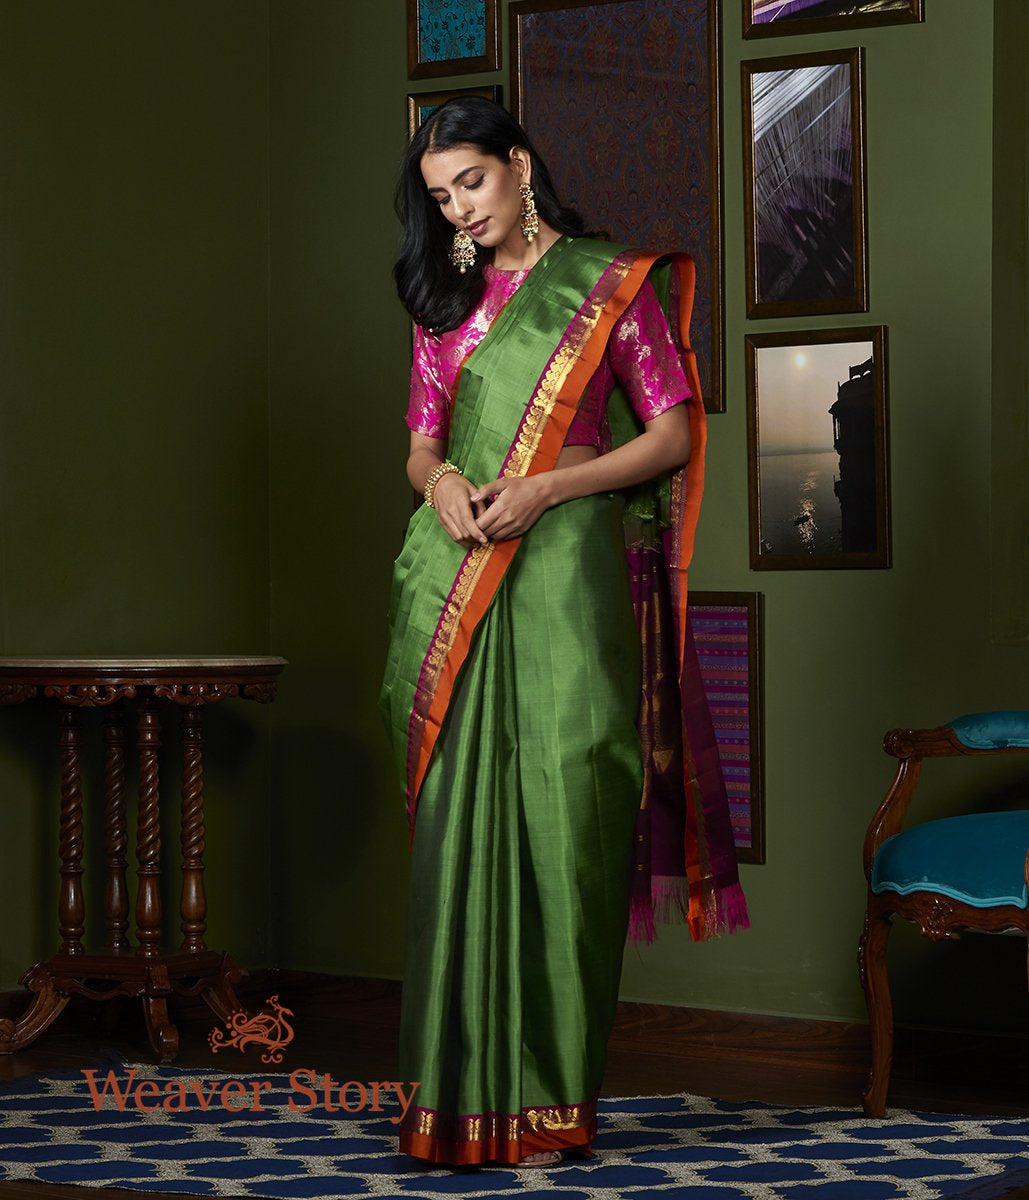 Handwoven Green Kanjivaram Silk Saree with Orange and Wine Border